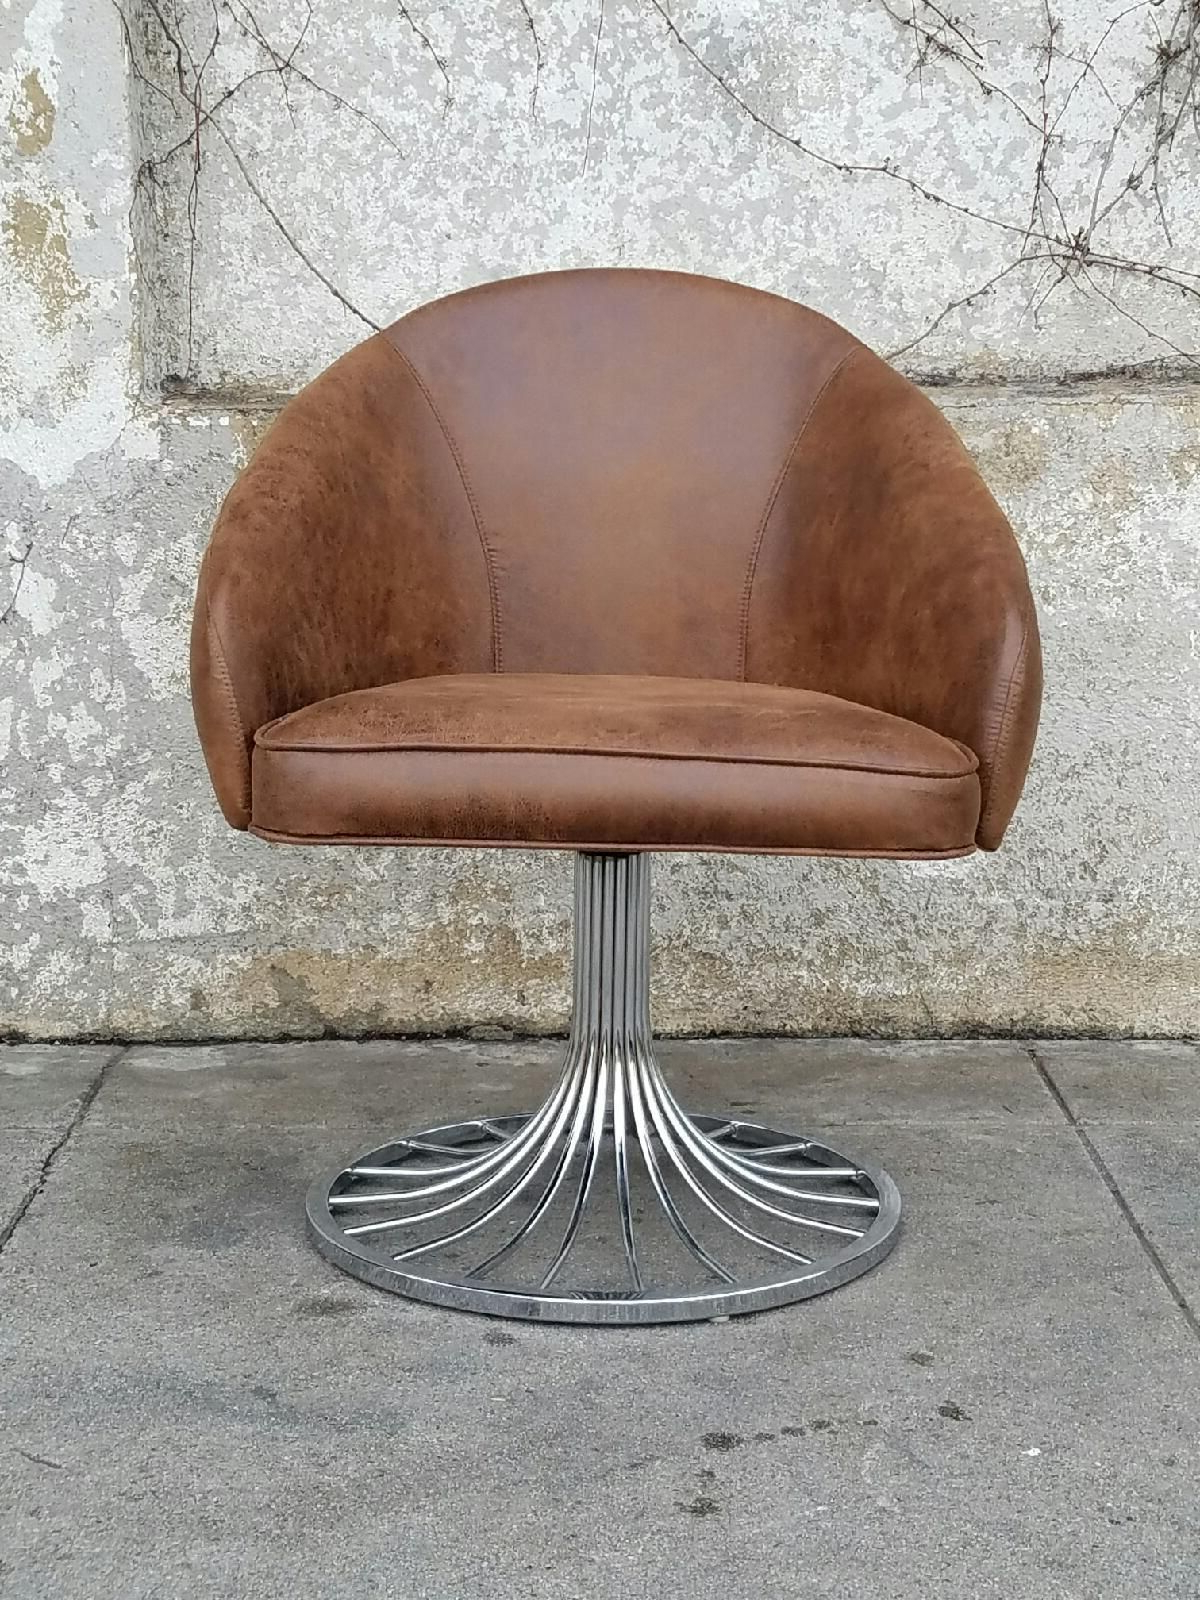 Most Popular Faux Distressed Leather Vintage Swivel Chair In Tobacco Brown Pertaining To Swivel Tobacco Leather Chairs (View 13 of 20)